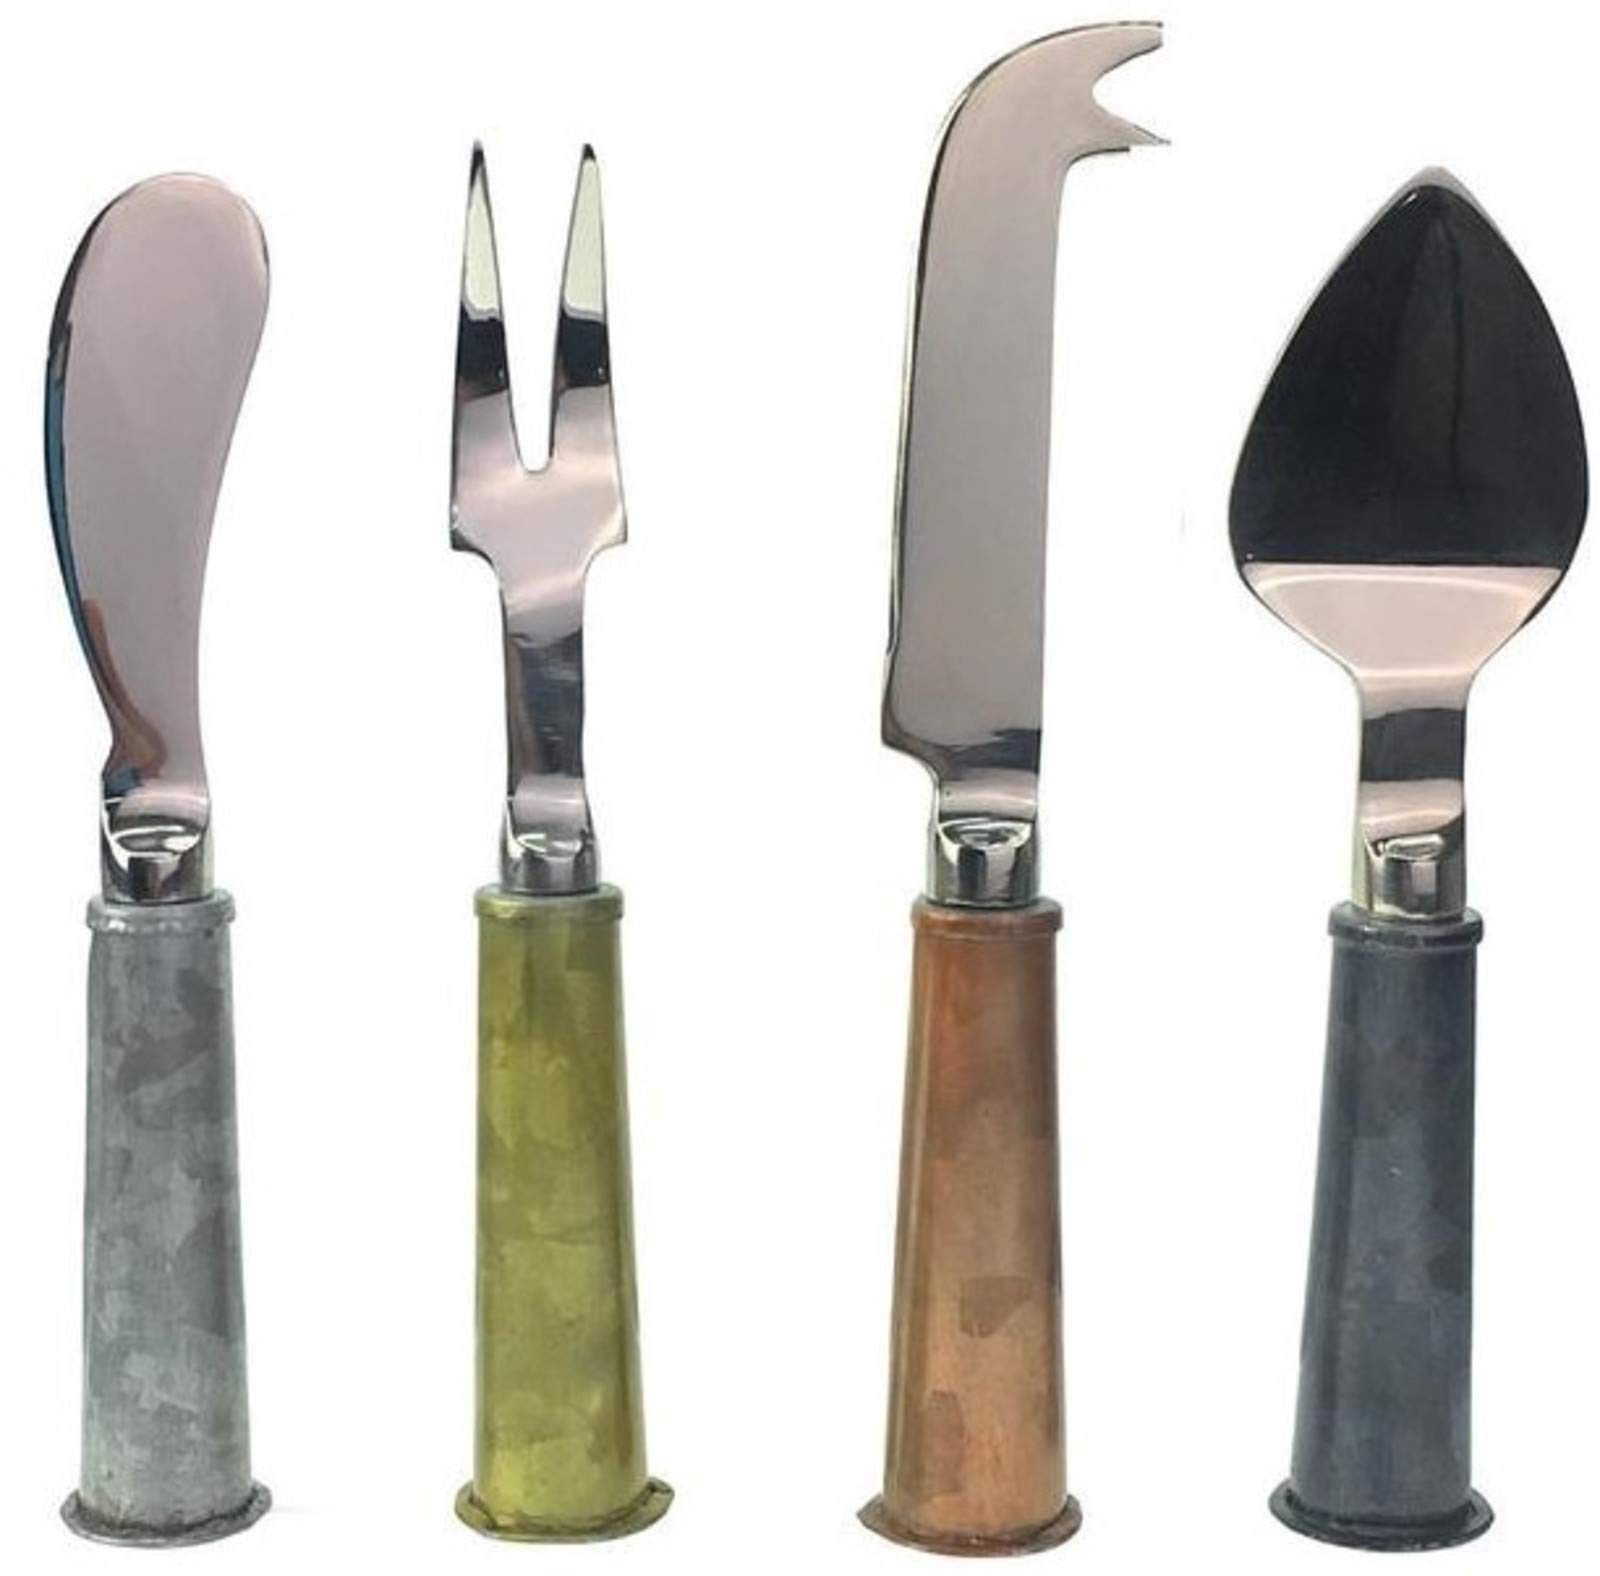 Galrose CHEESE KNIFE SET Premium Quality - Galvanized Iron Handle-Stainless Steel Blade Stunning 4 Piece Cheese Knives Set-Perfect for Home Entertainer/Cheese Lover 6th Wedding Anniversary Gift Idea by Galrose Dezigns